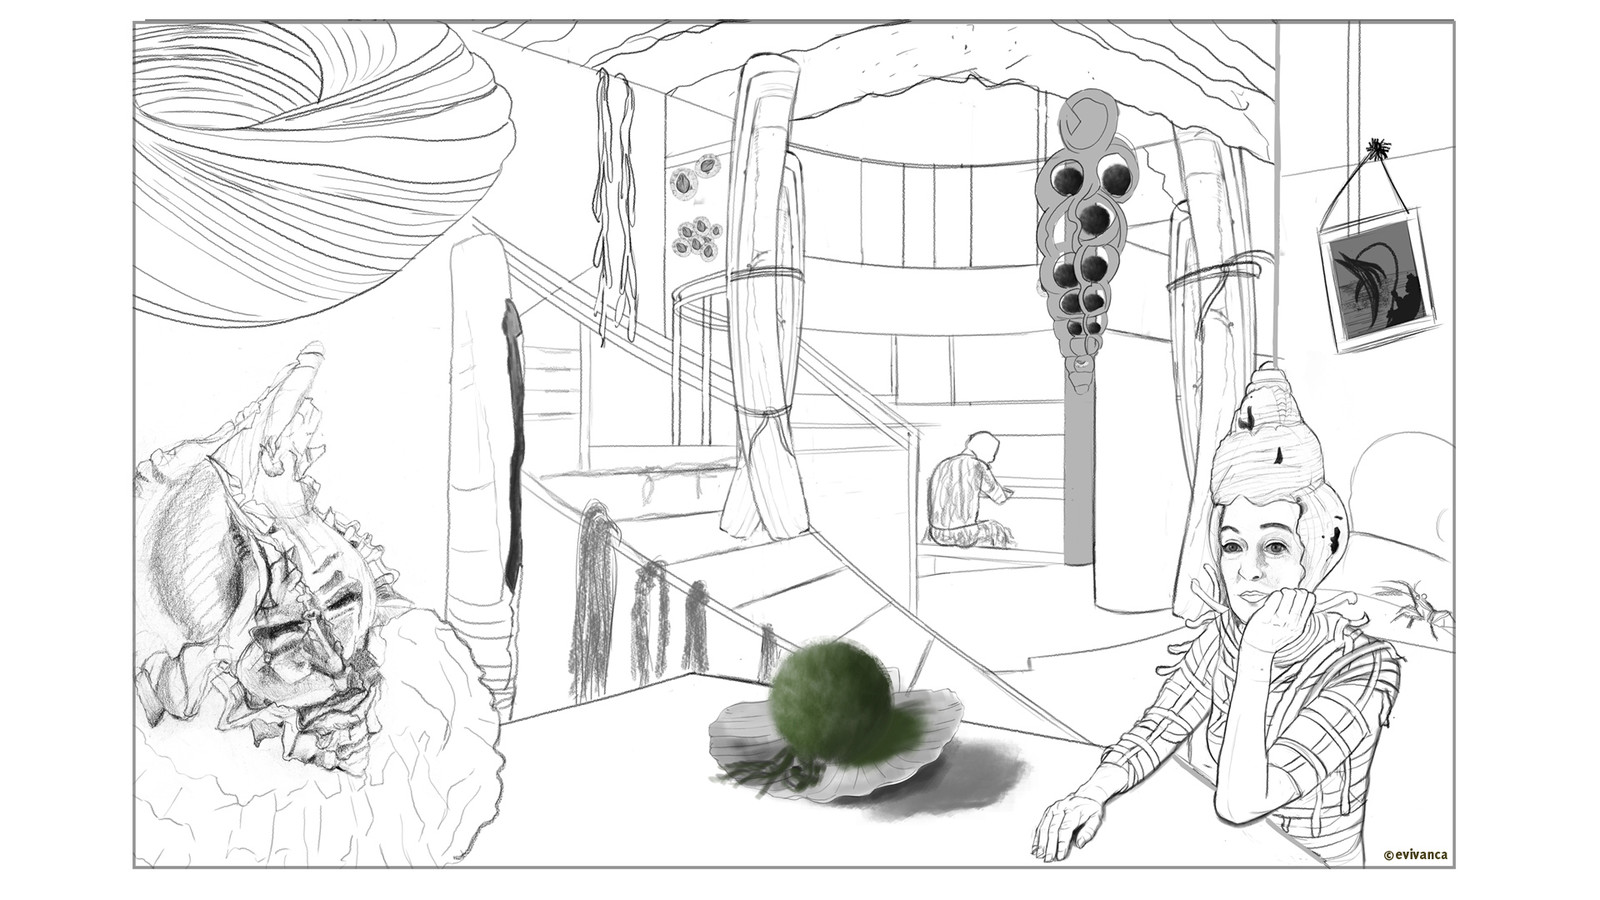 Alternative version for an interior design for my Calusa shell city - dining room